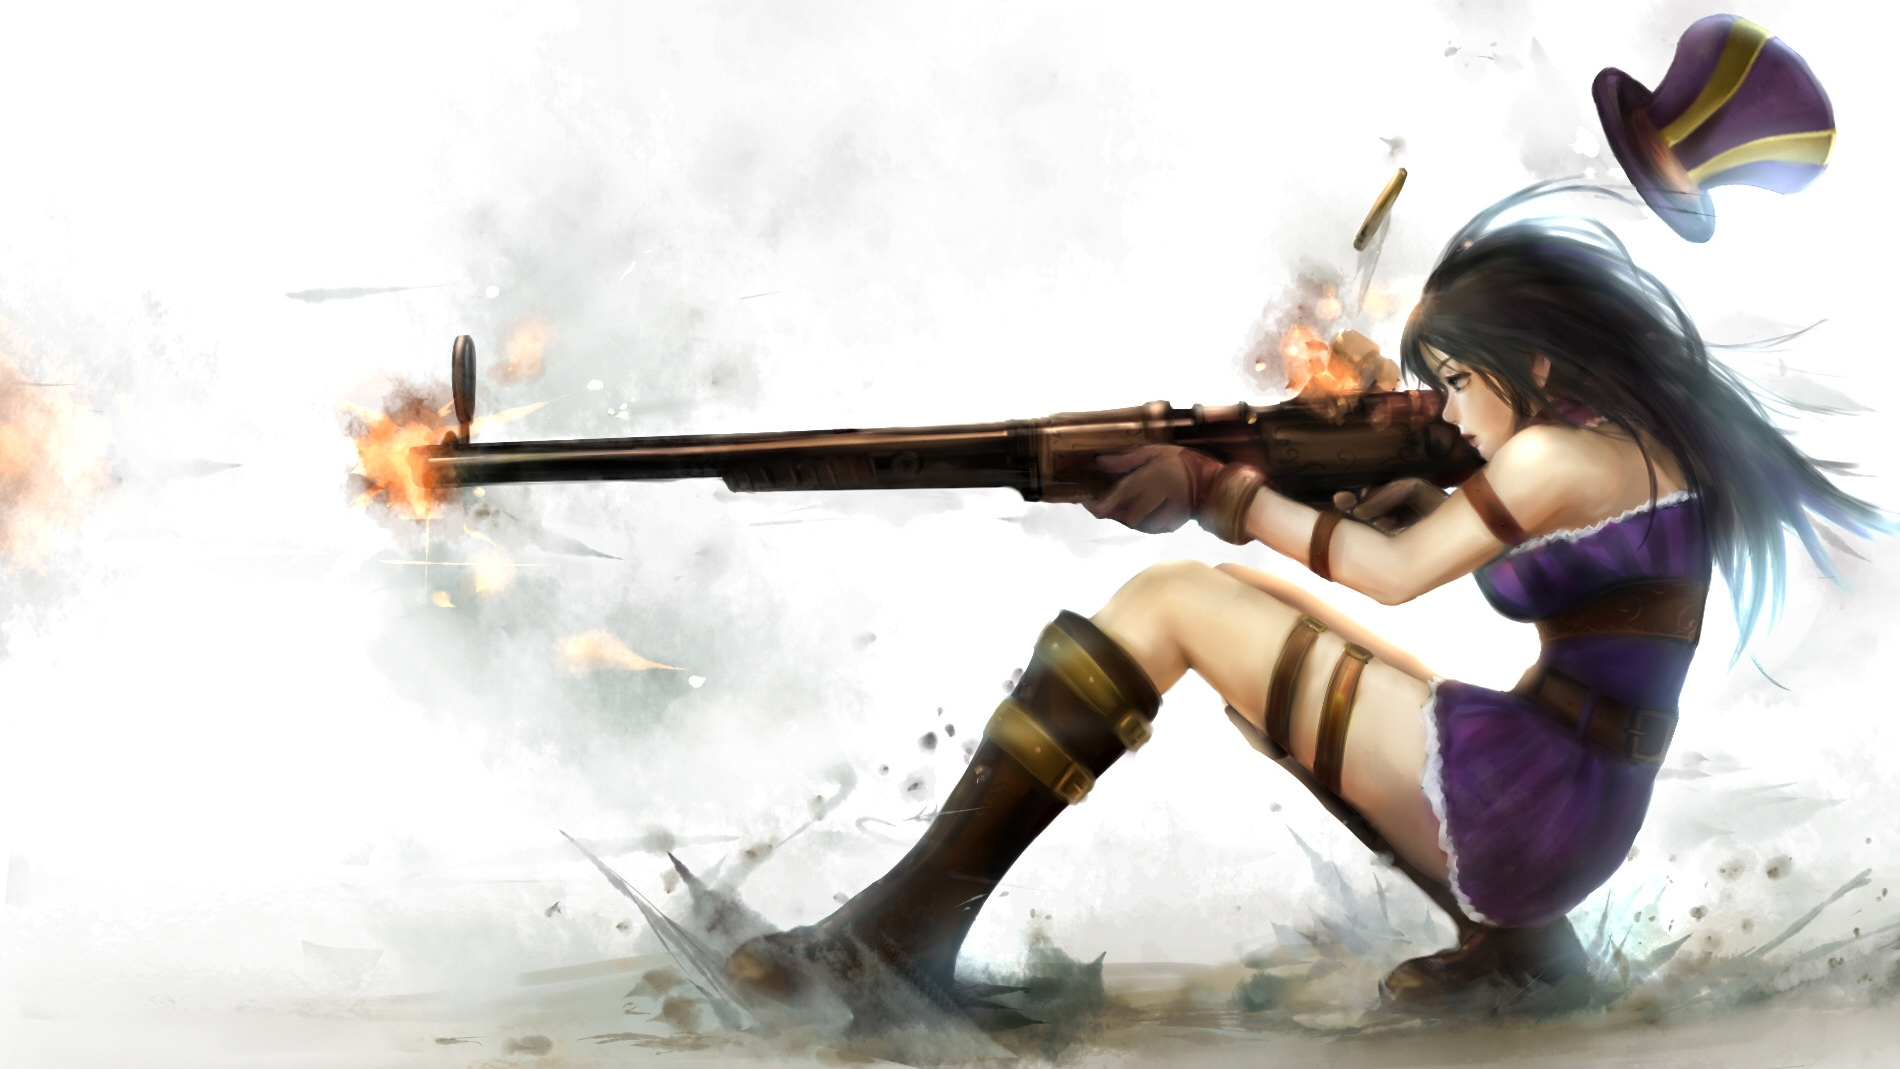 Caitlyn wallpaper